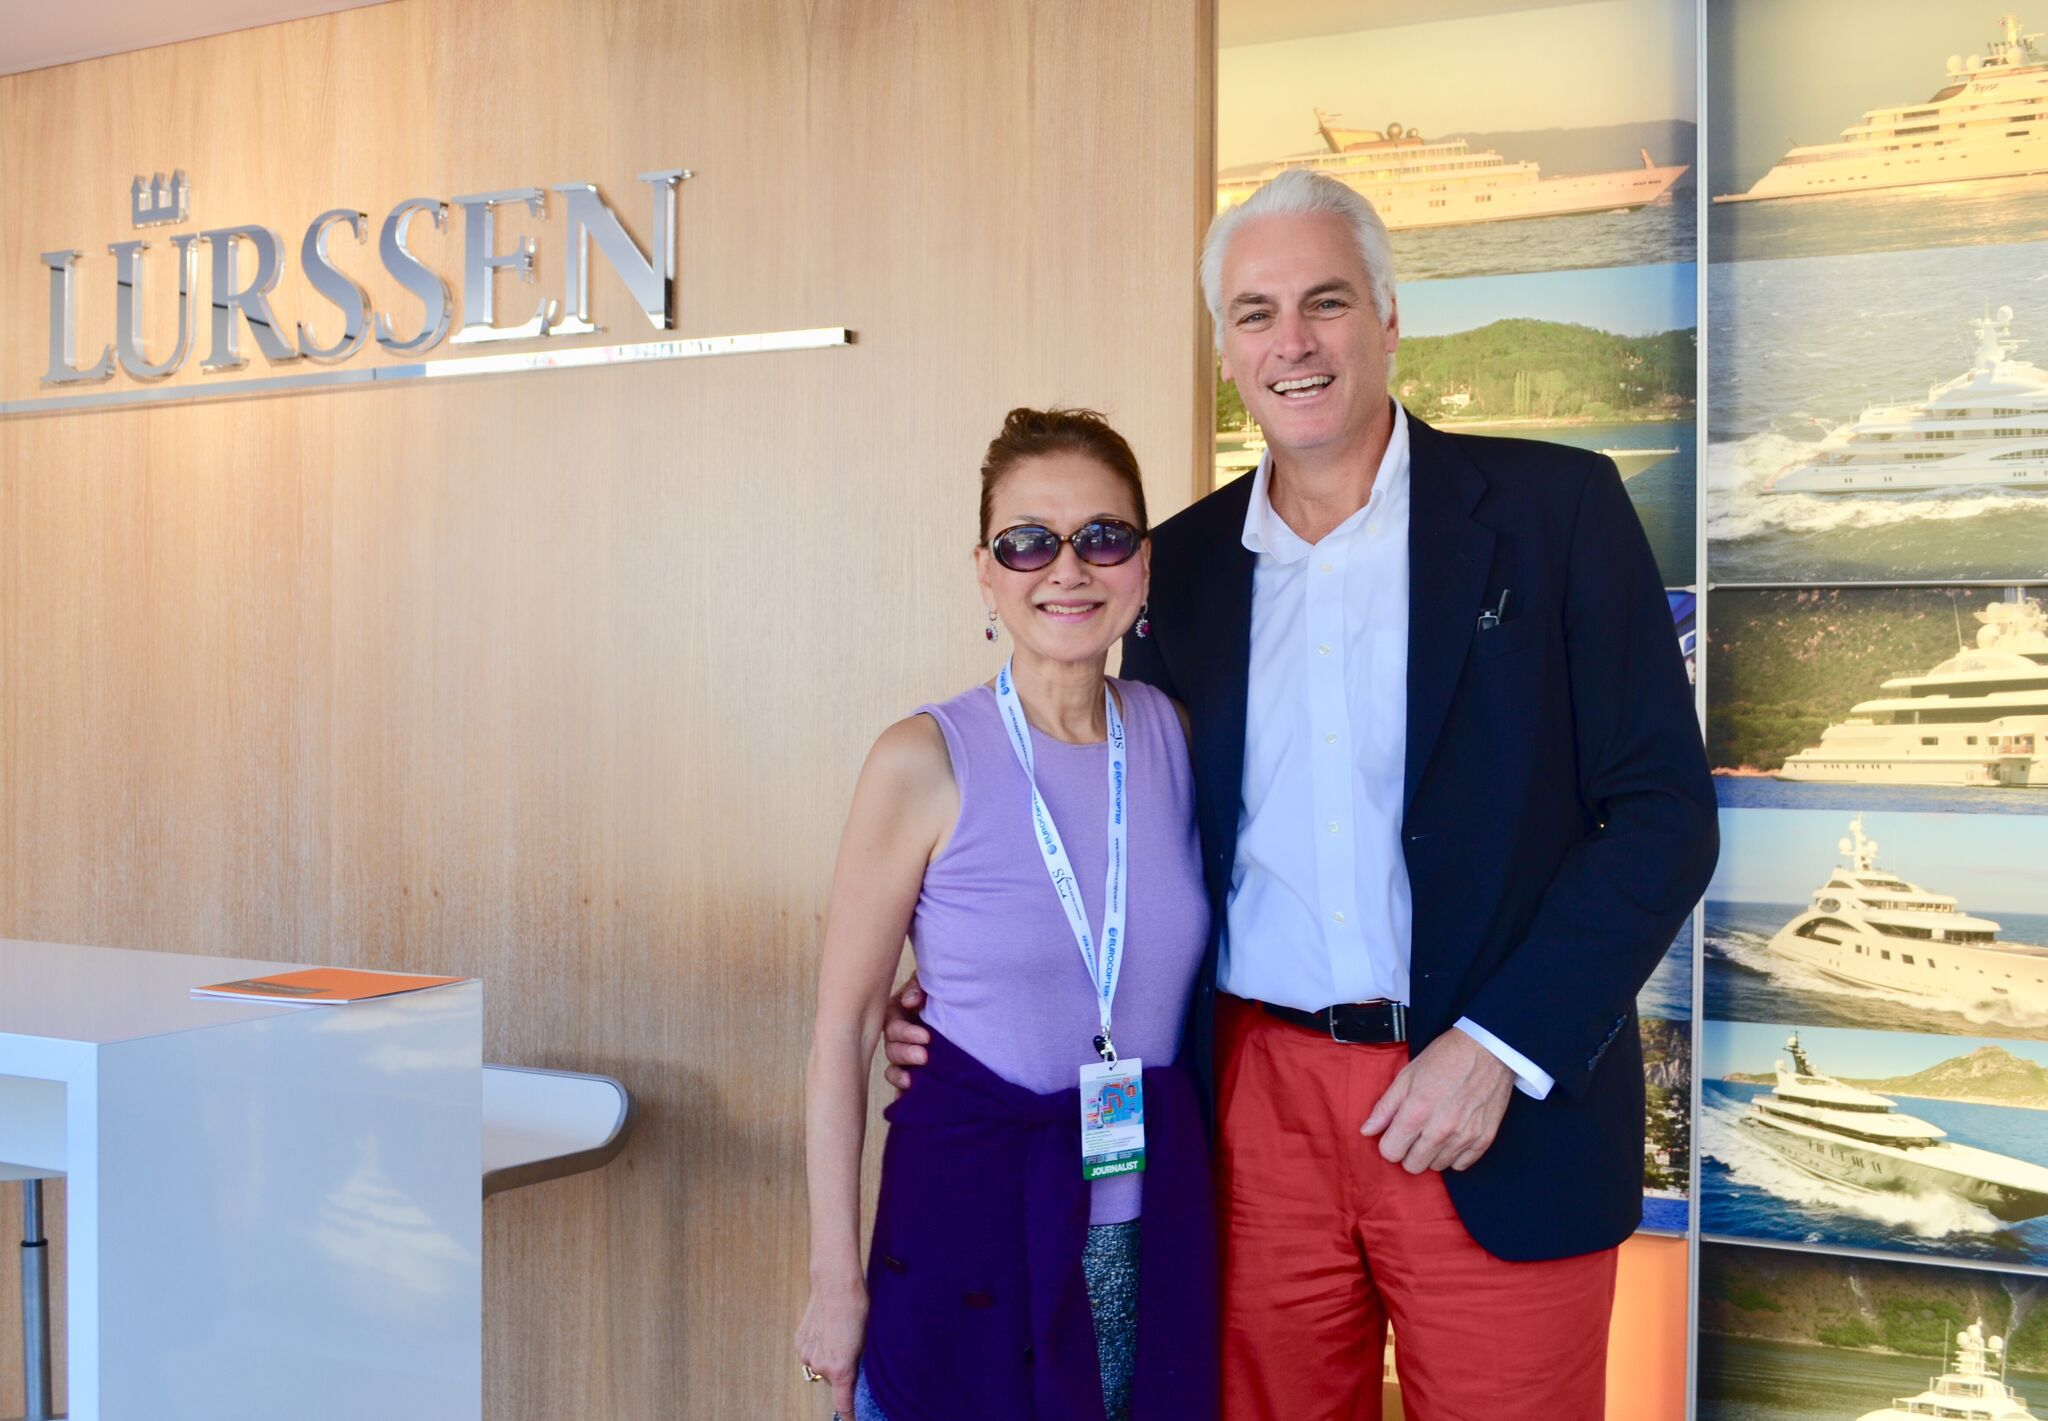 The author with Peter Lürssen at the 2018 Monaco Yacht Show